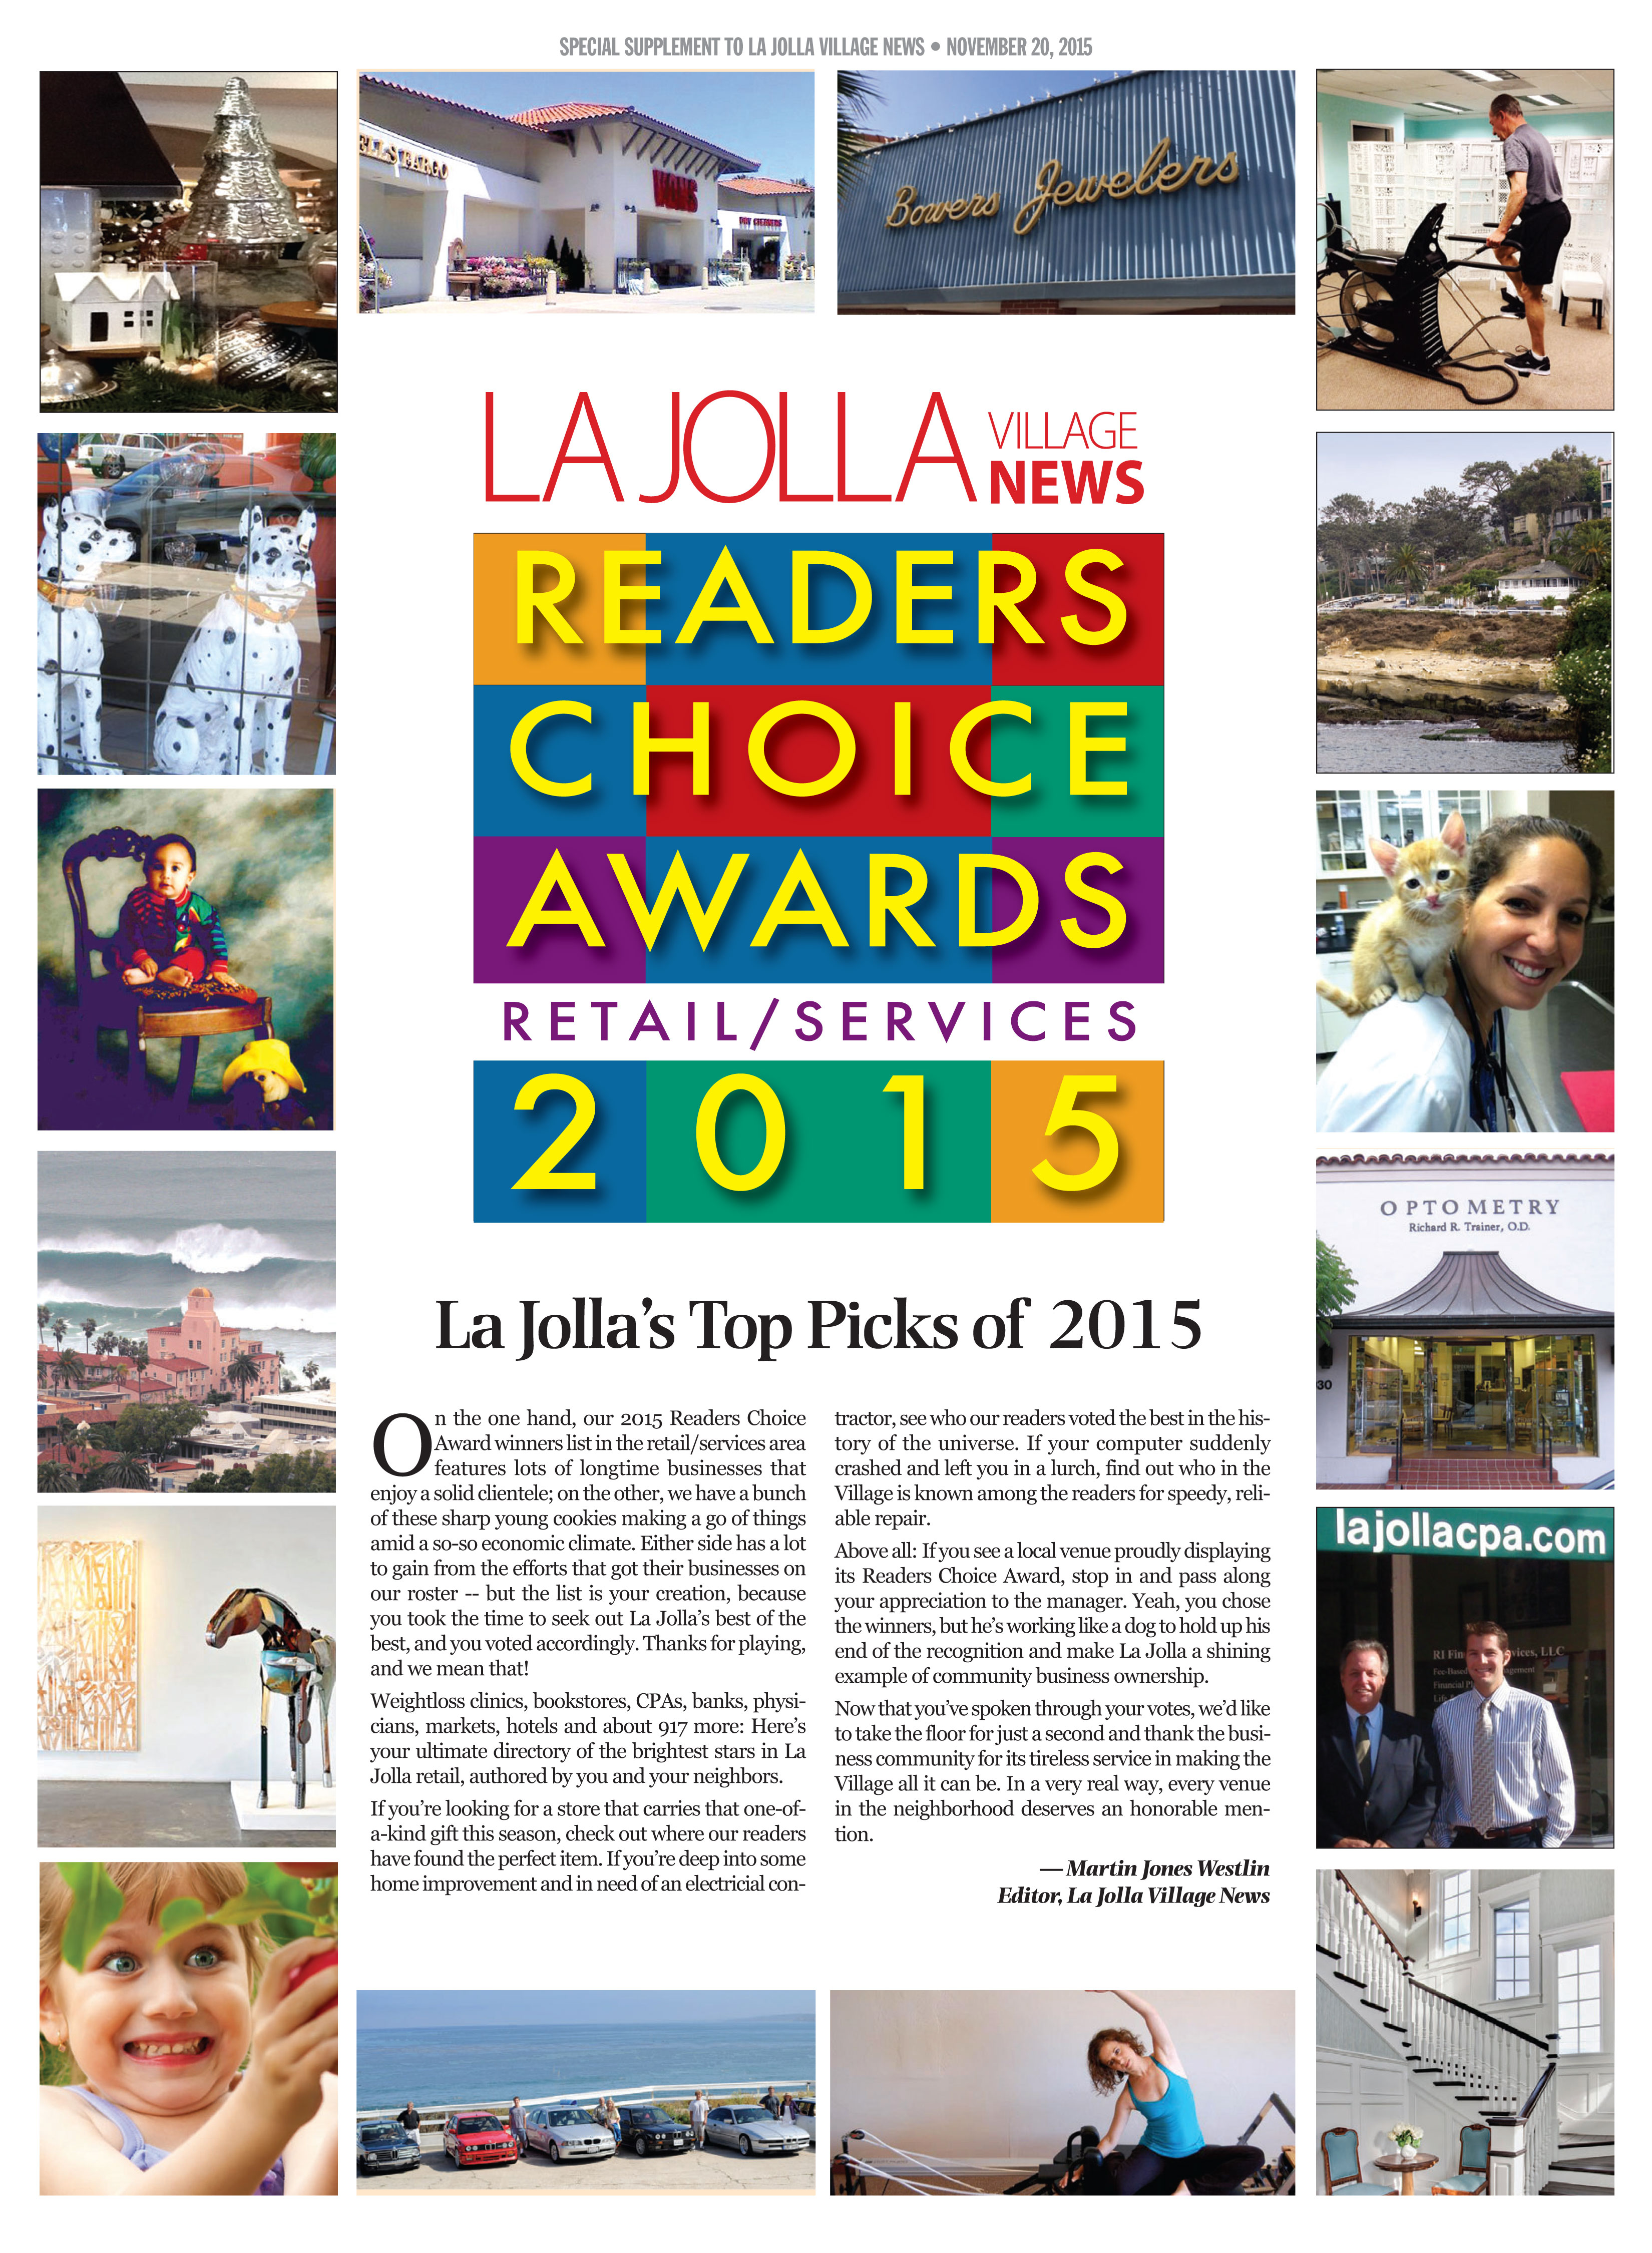 La Jolla Village News Best Retail Services 2016 Awards